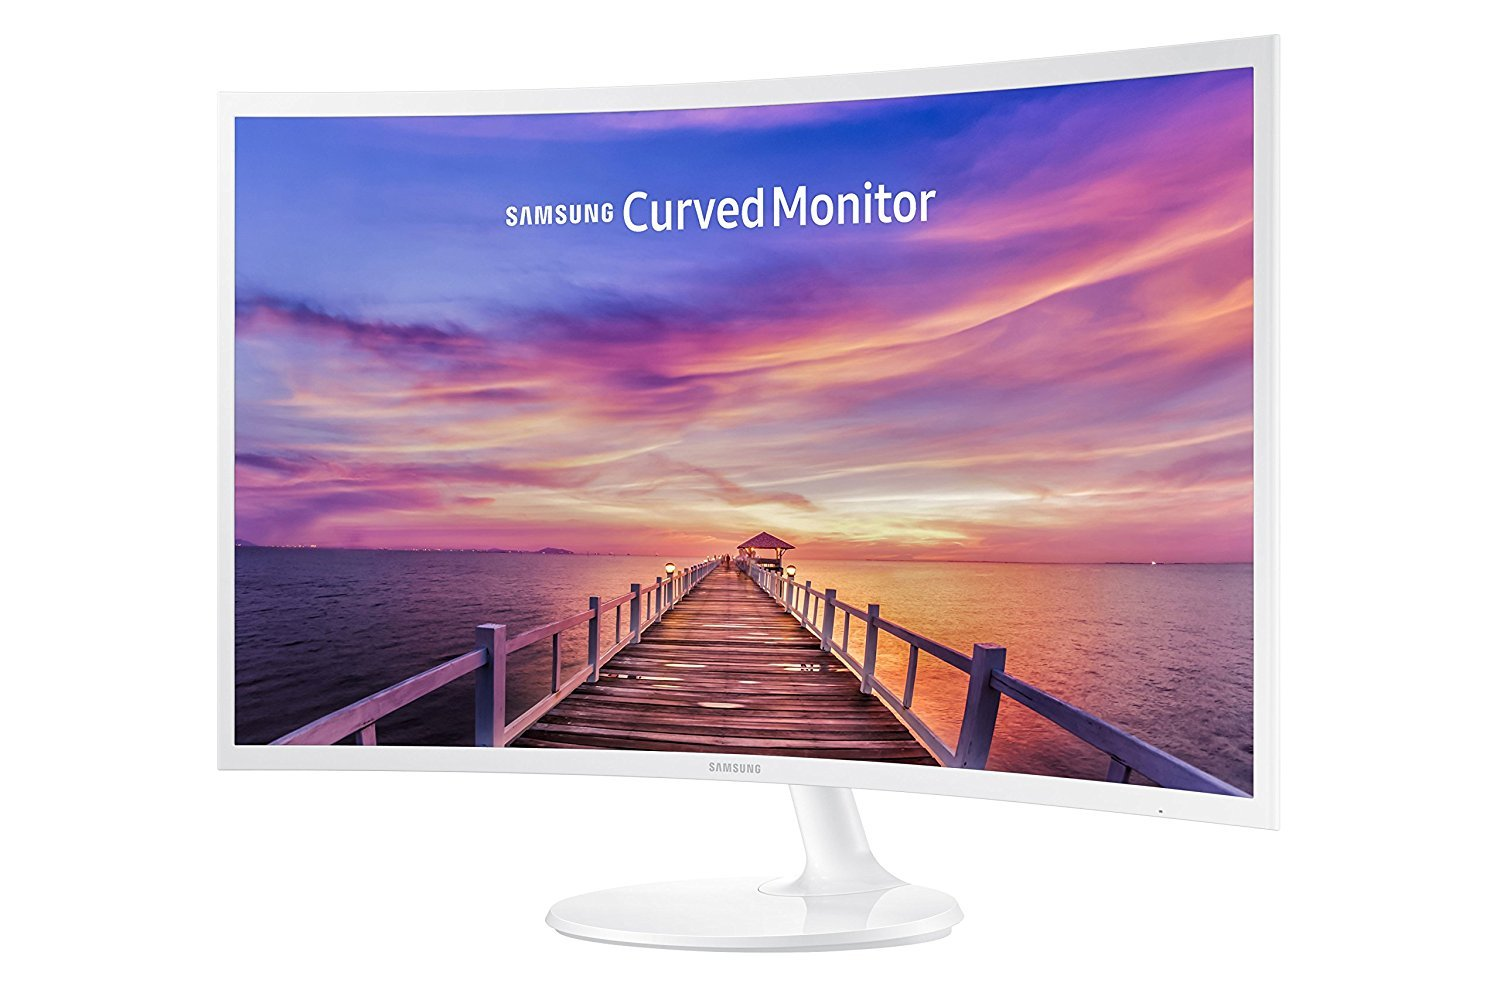 Samsung 32-Inch Widescreen FHD Curved LED Monitor, 1920x1080 Resolution, 16:9 Aspect Ratio, 4ms Response Time, 178 Degrees Viewing Angles, 5,000:1 Static Contrast Ratio, 2 HDMI, Display Port, White